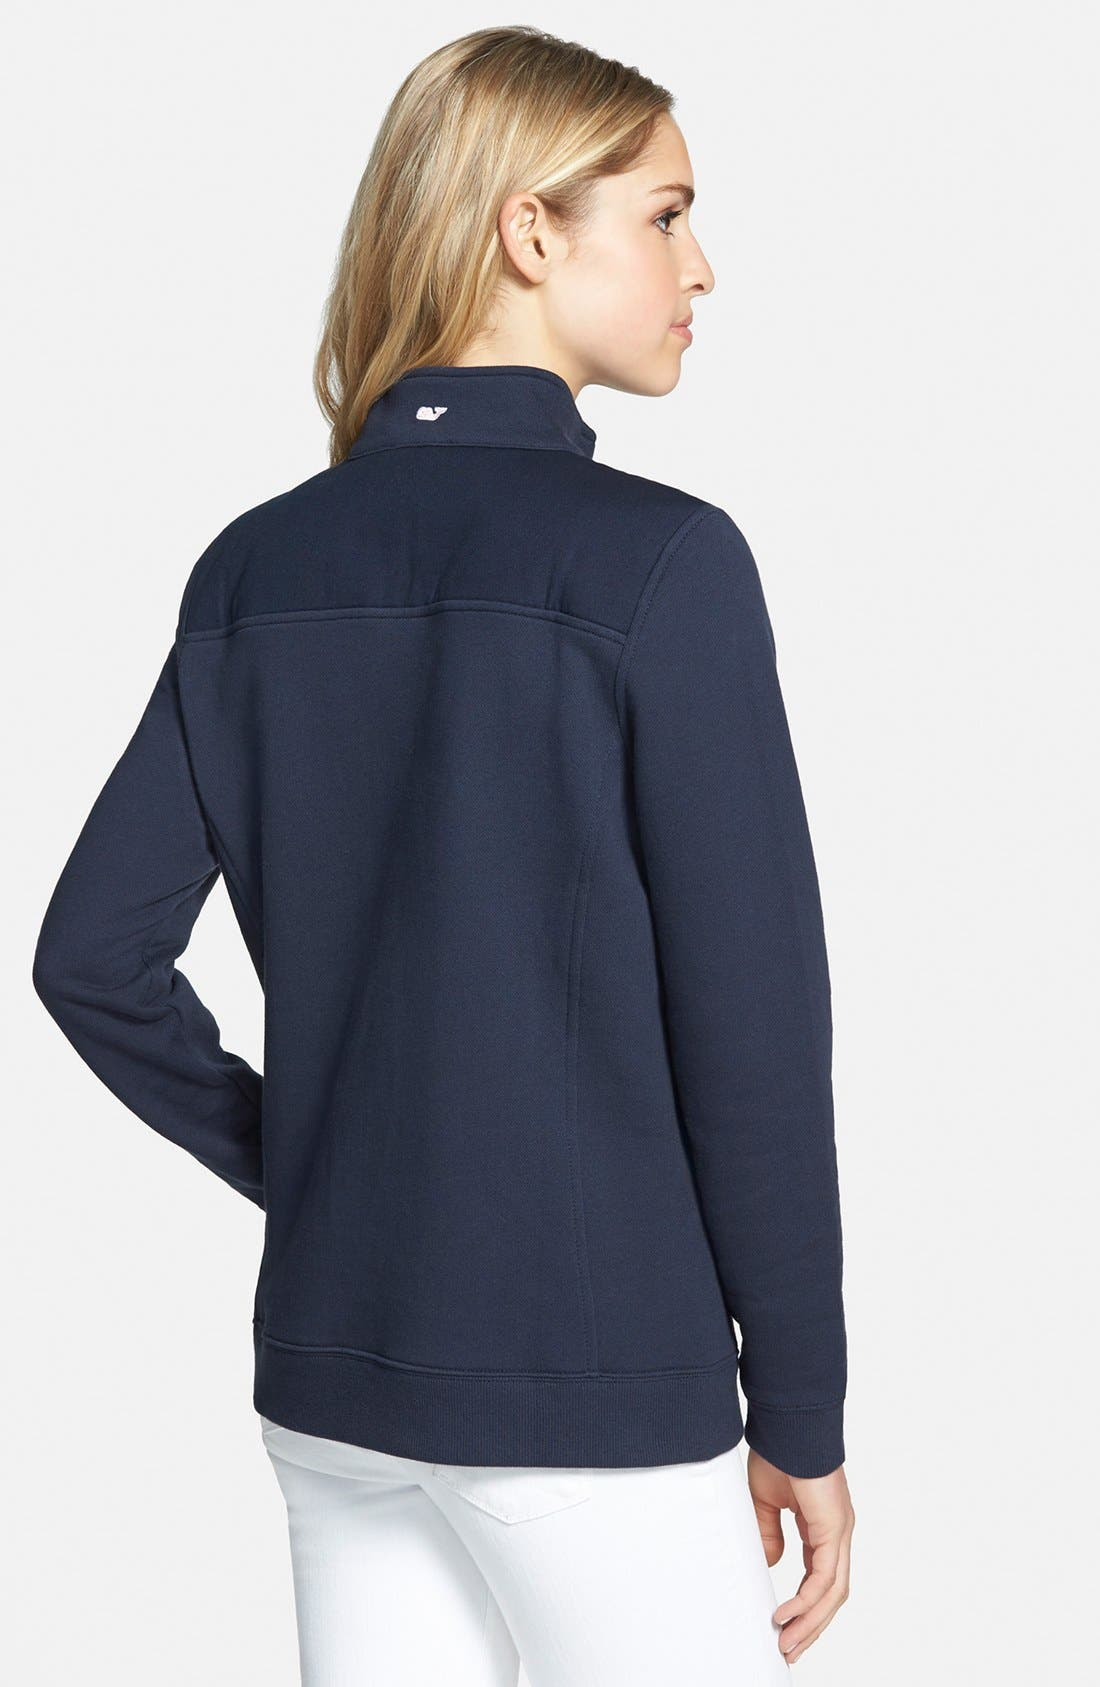 Shep Half Zip French Terry Pullover,                             Alternate thumbnail 8, color,                             VINEYARD NAVY